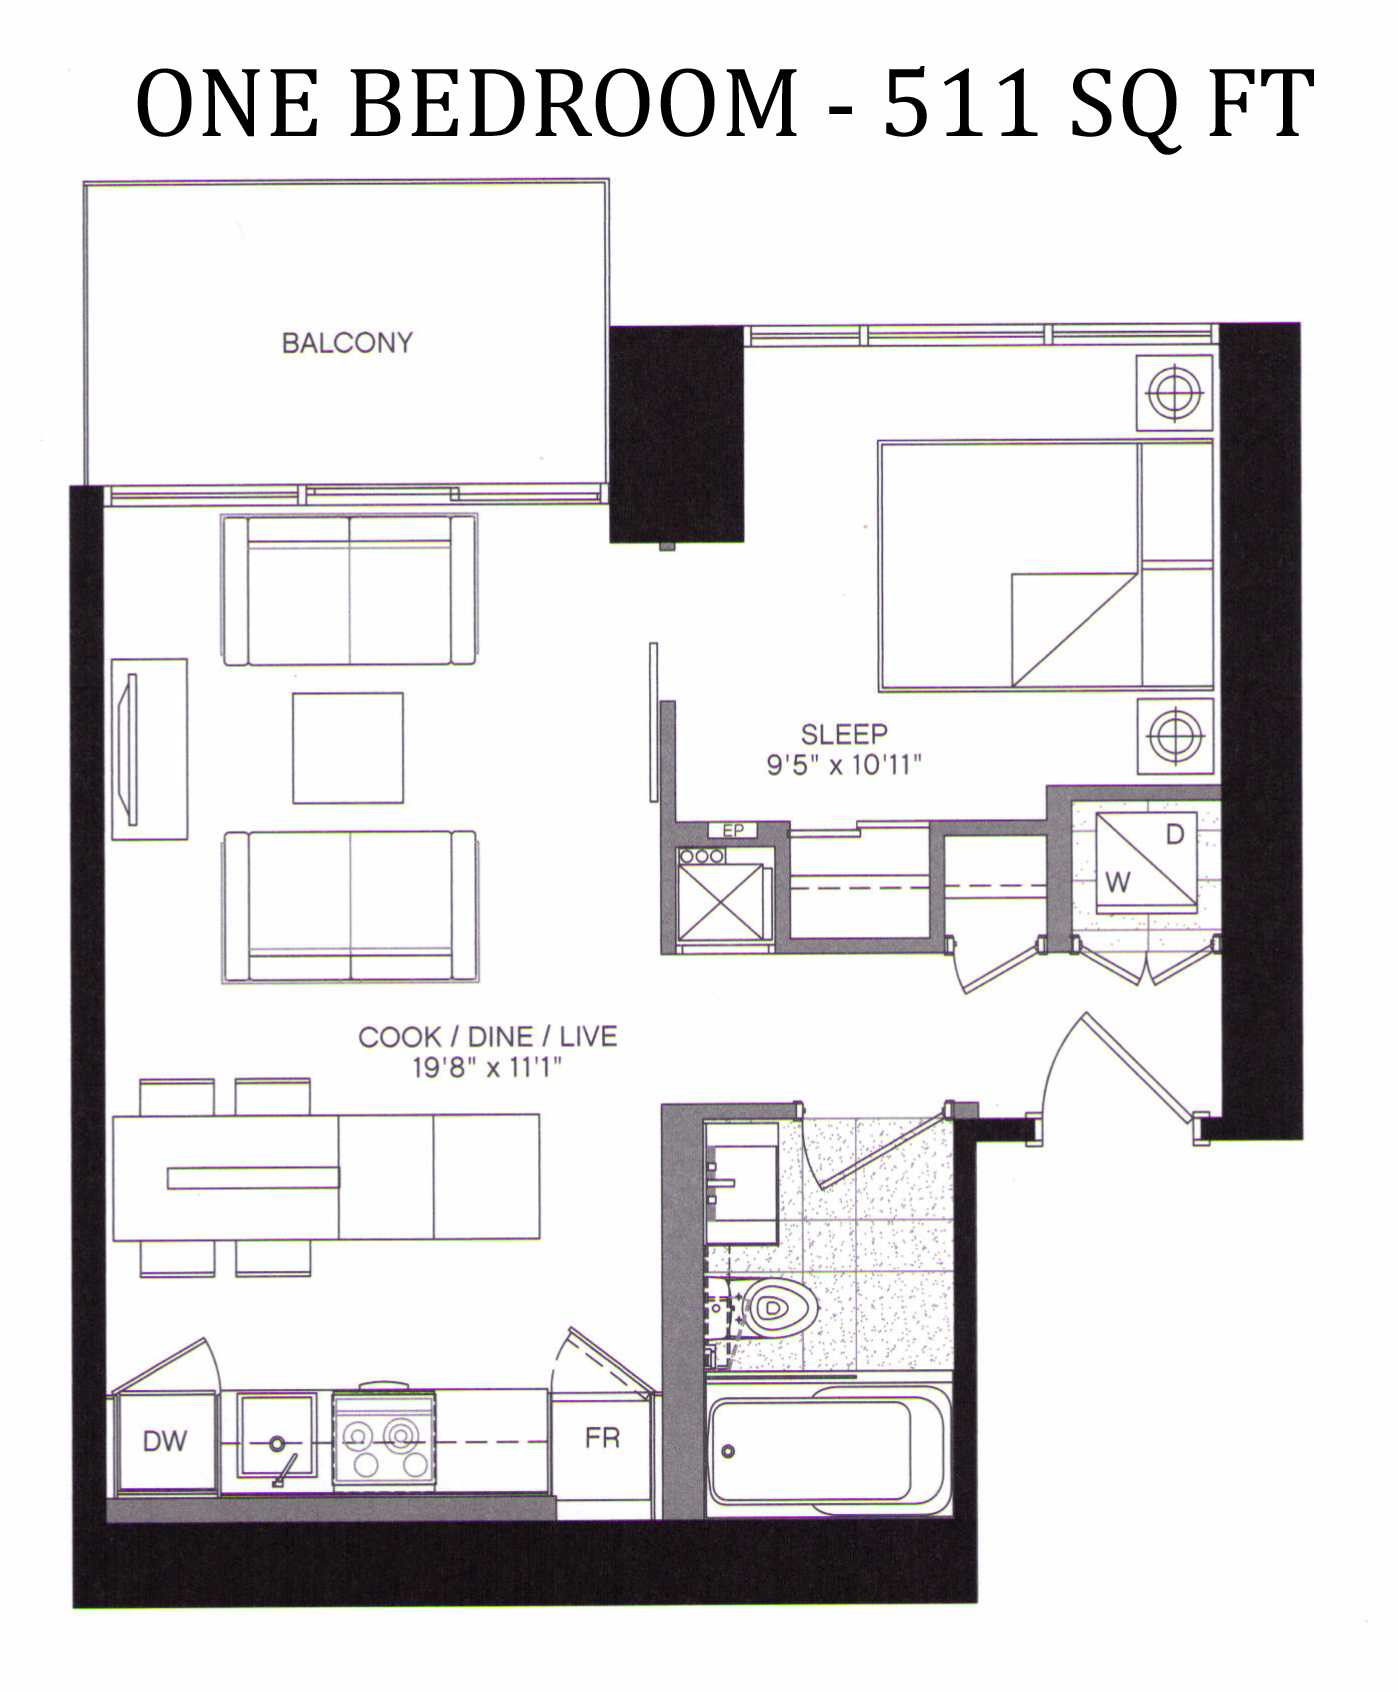 5 ST JOSEPH ST - FLOORPLANS ONE BED 511 SQ FT - CONTACT YOSSI KAPLAN